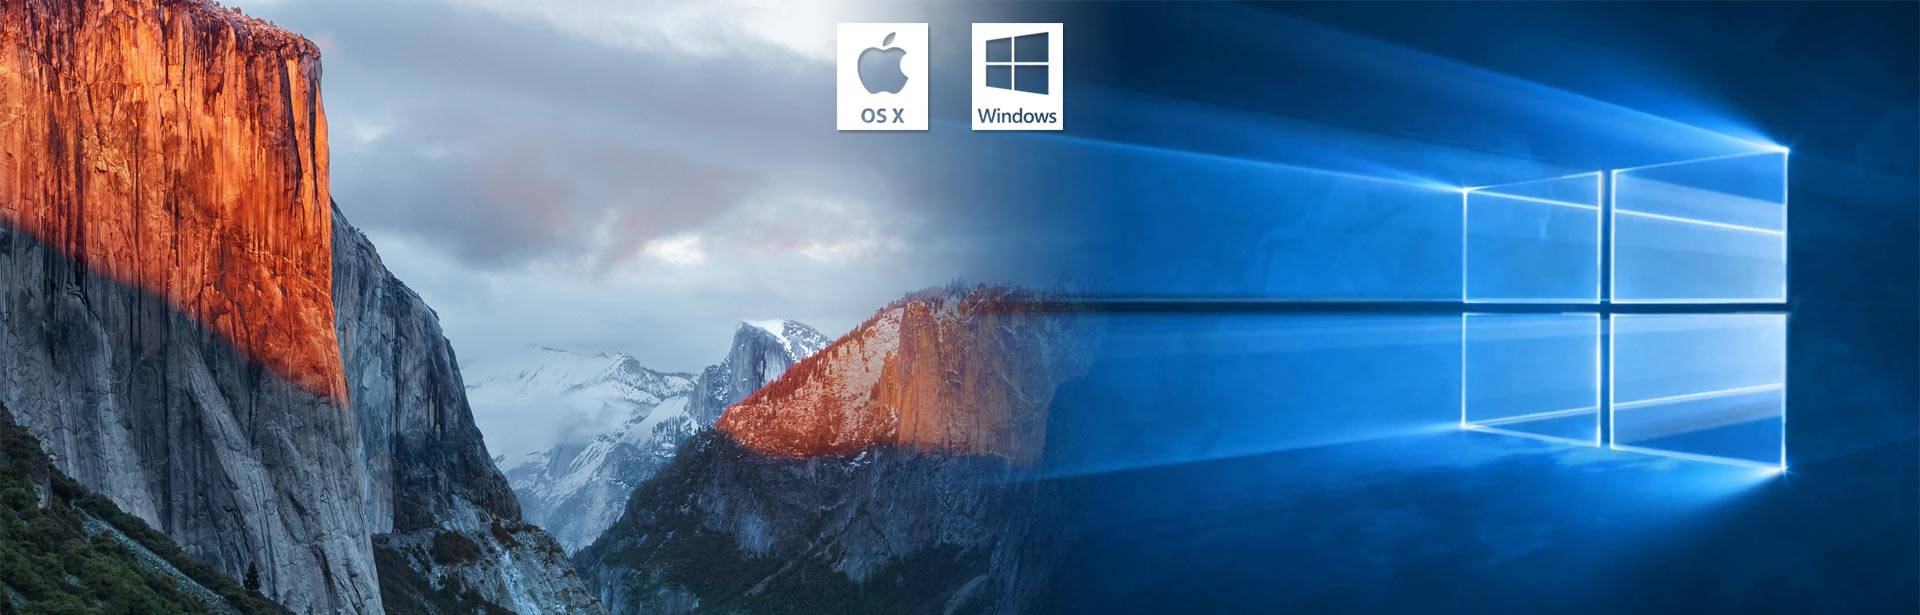 Mac OS X - Windows